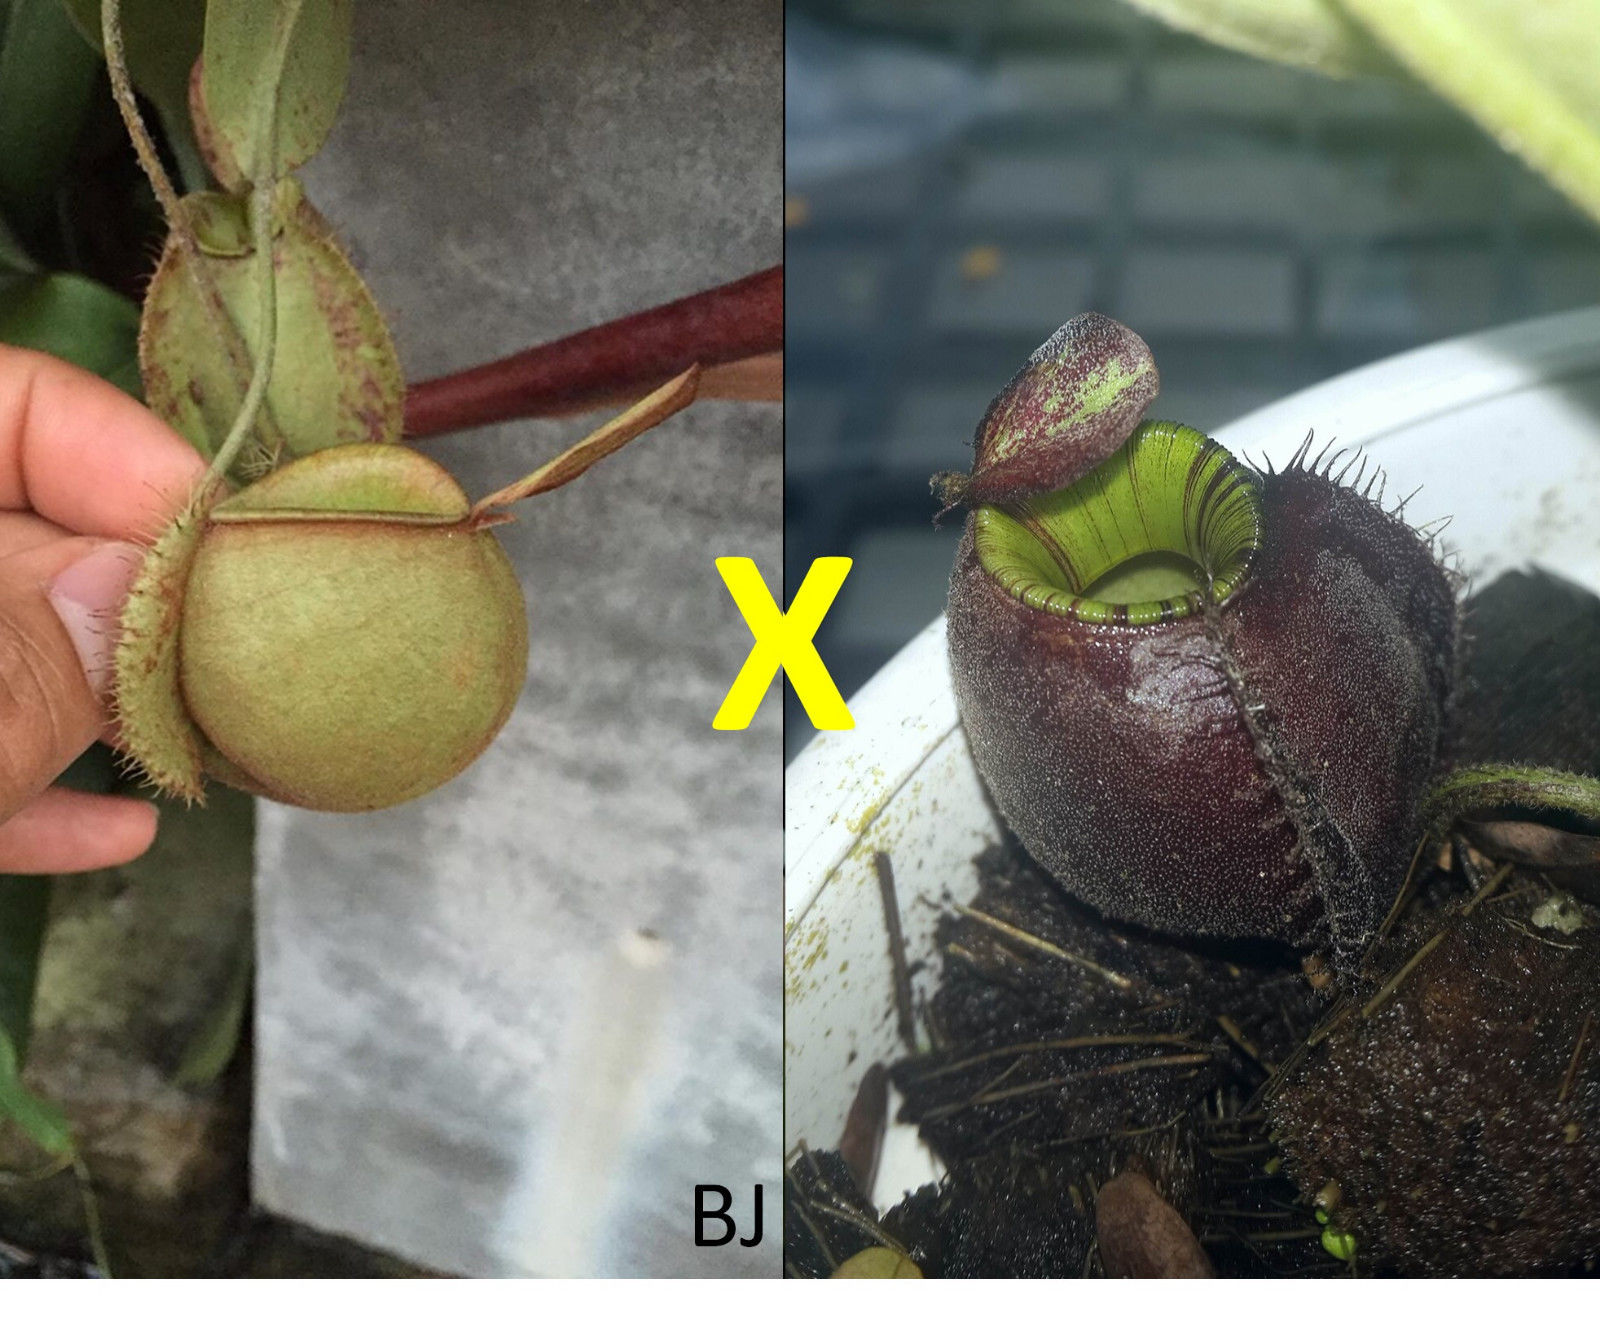 Nepenthes Ampullaria Green Squat Form x Ampullaria Cv. Black Miracle